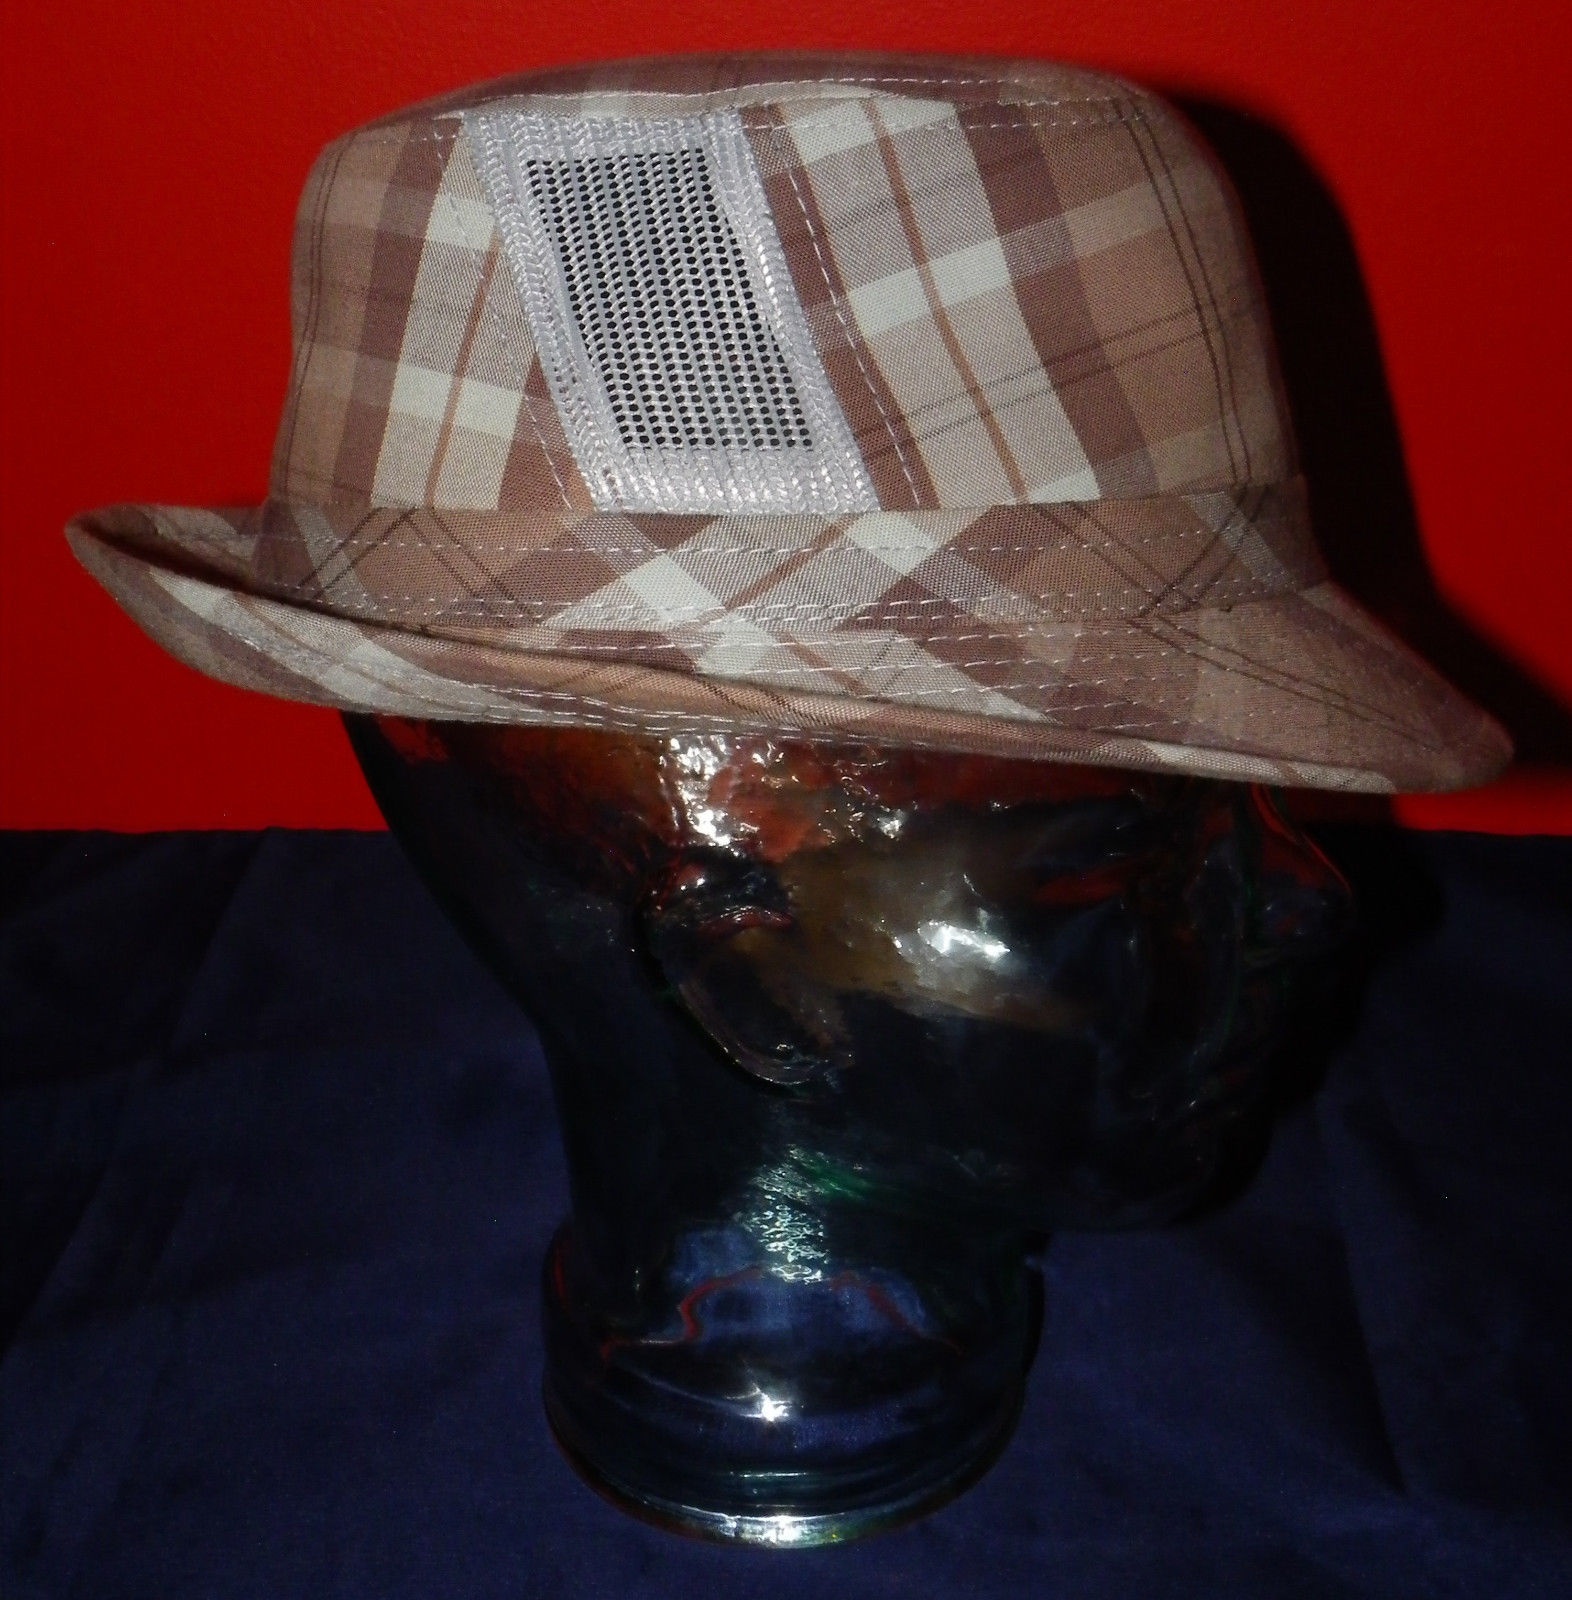 Dorfman Pacific Authentic Handmade Headwear Size M Warm Plaid Fedora Trilby image 4